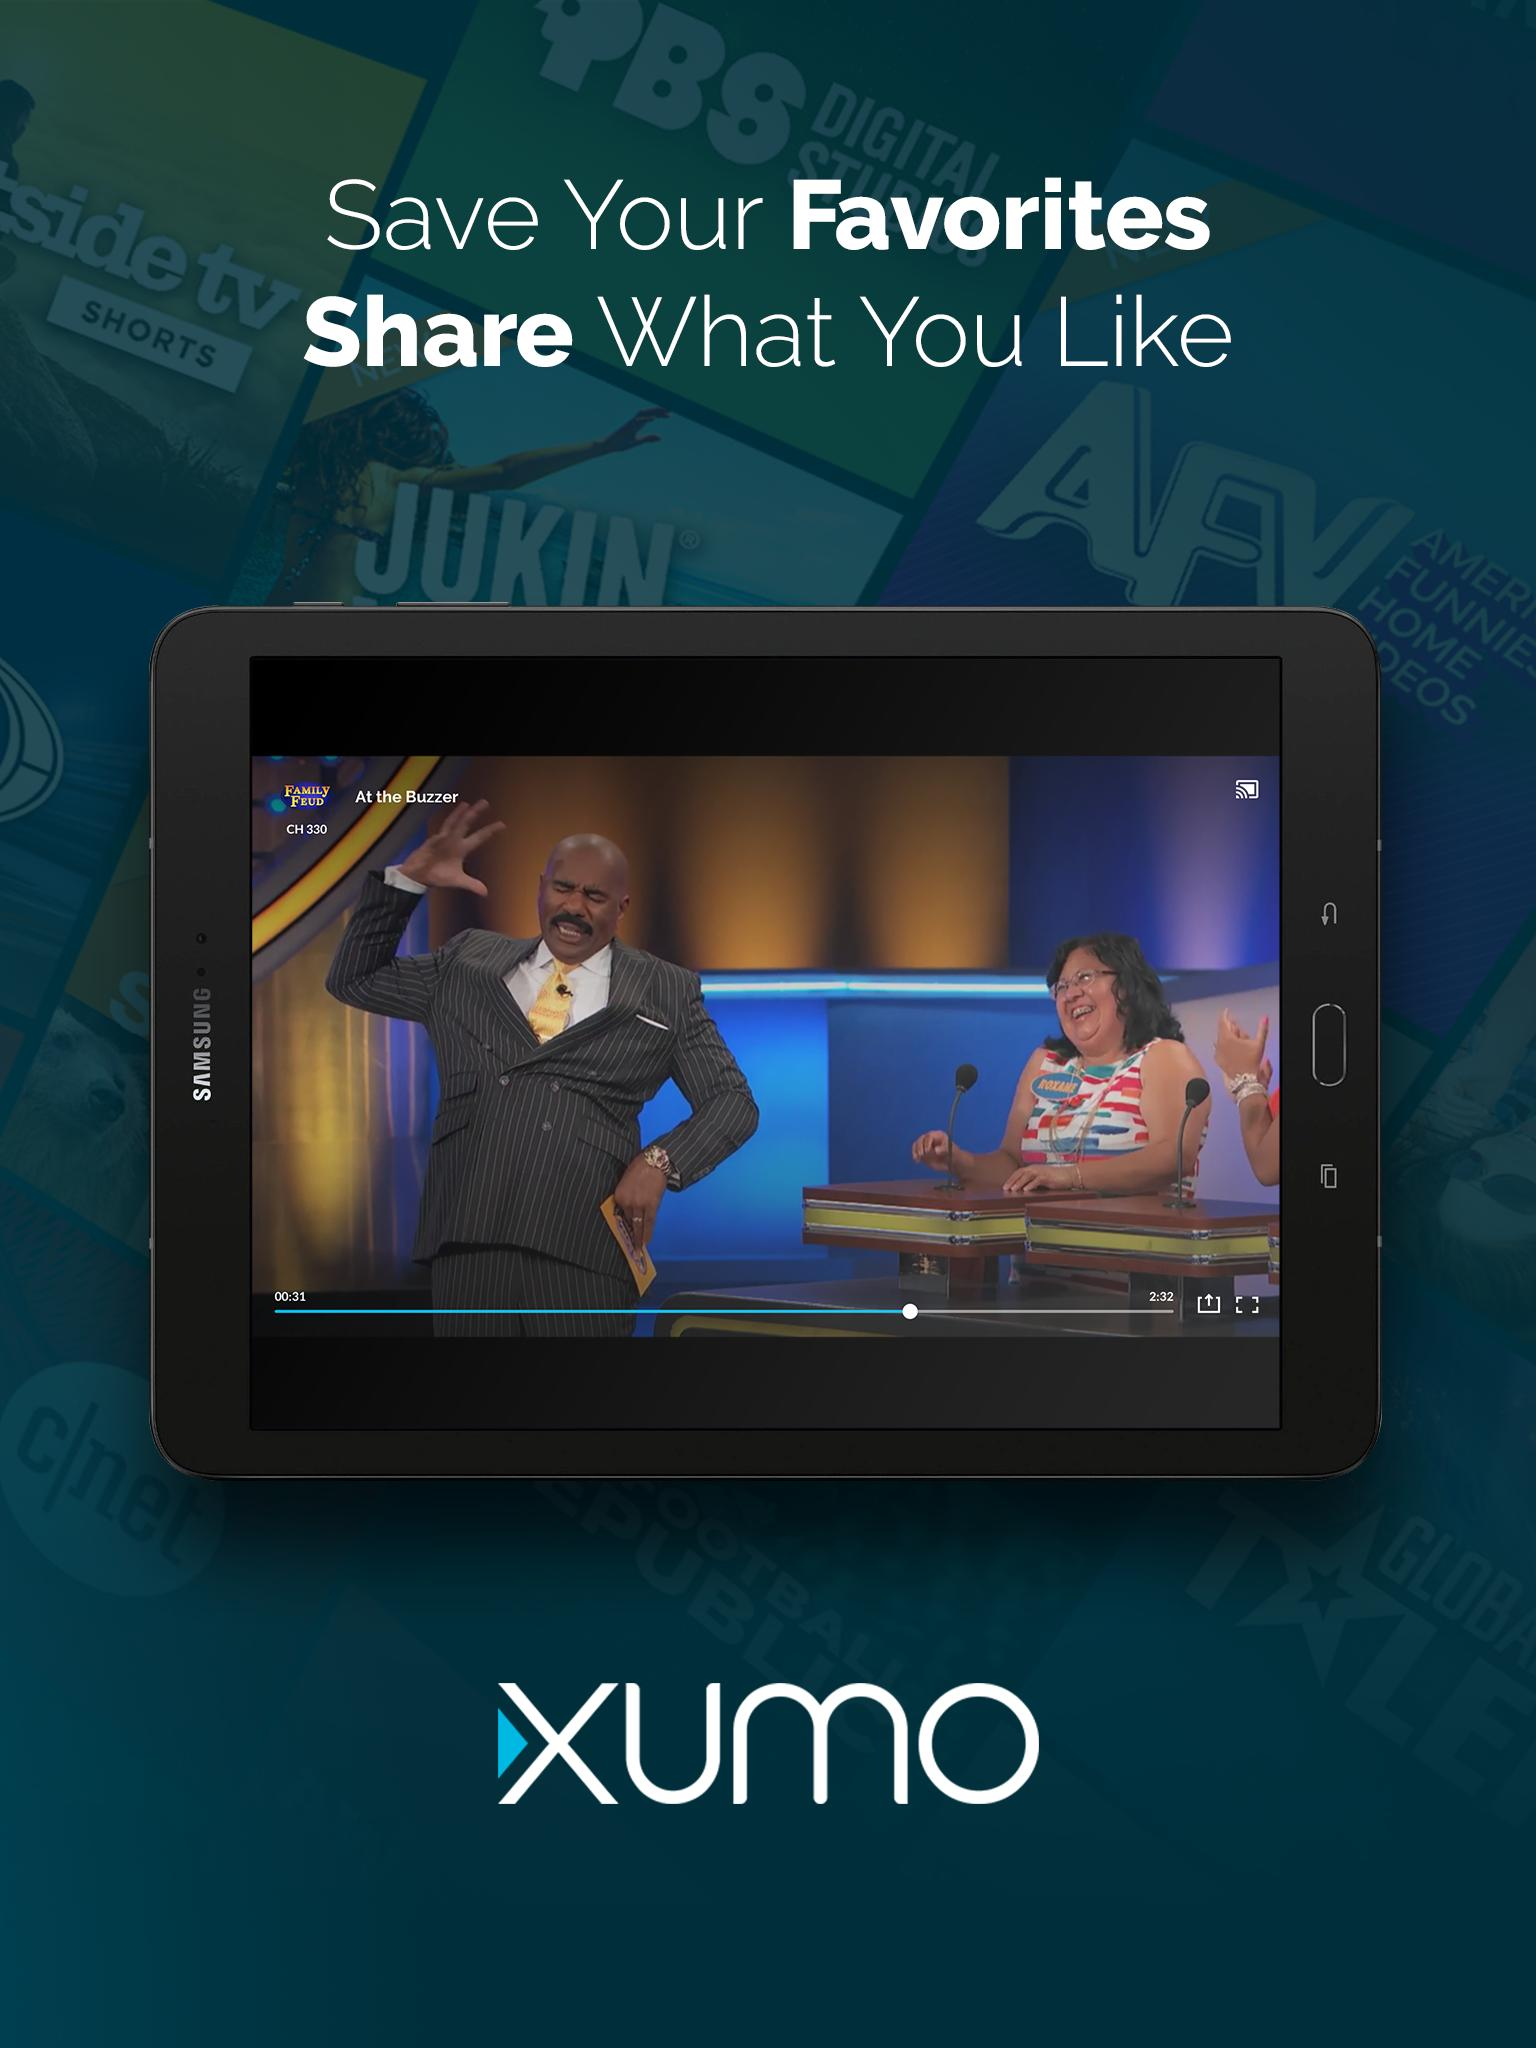 Comcast Takes Aim at Xumo, Likely to Distribute NBC